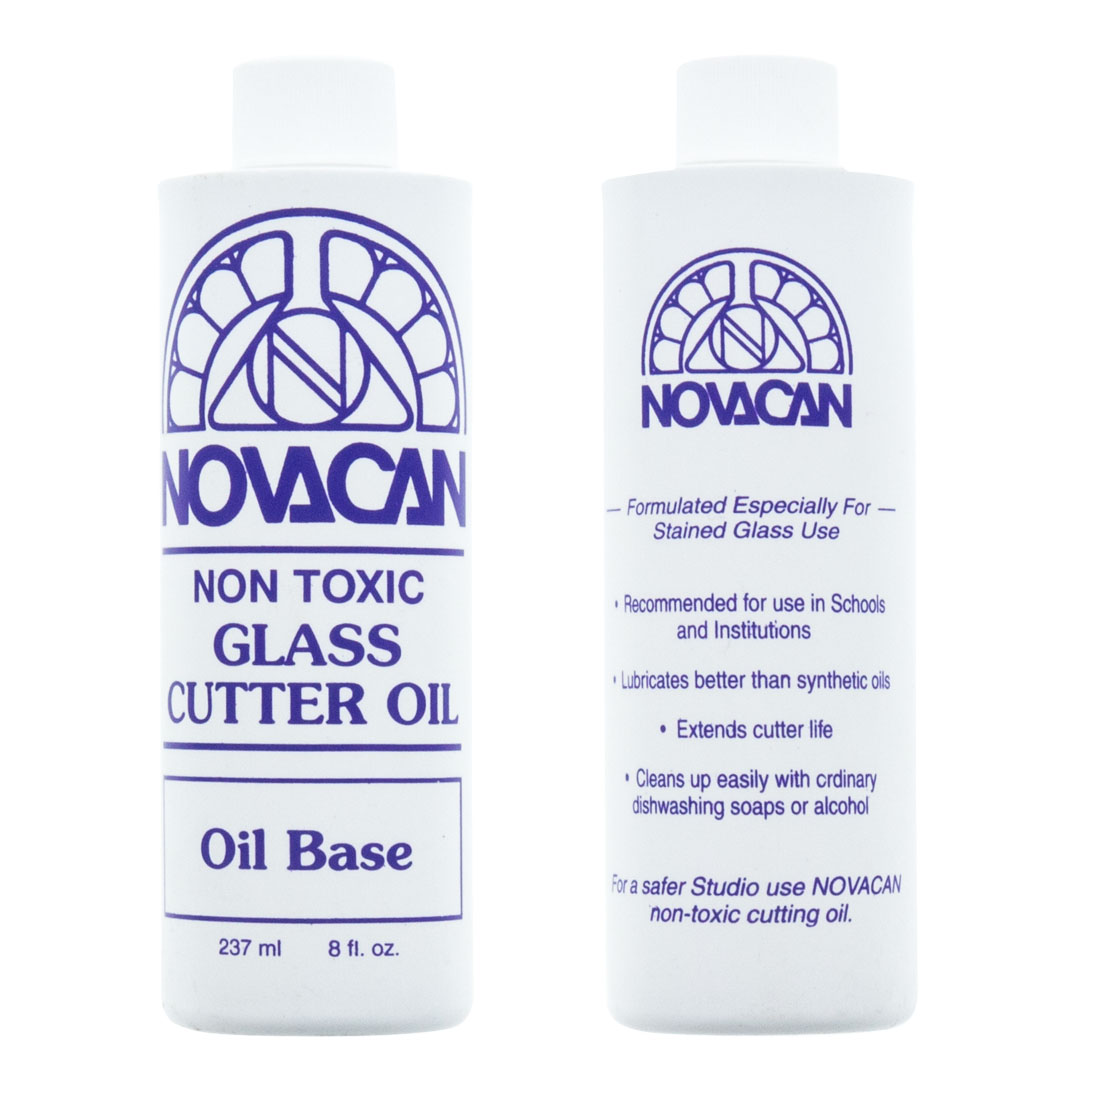 Novacan Cutter Oil 8oz